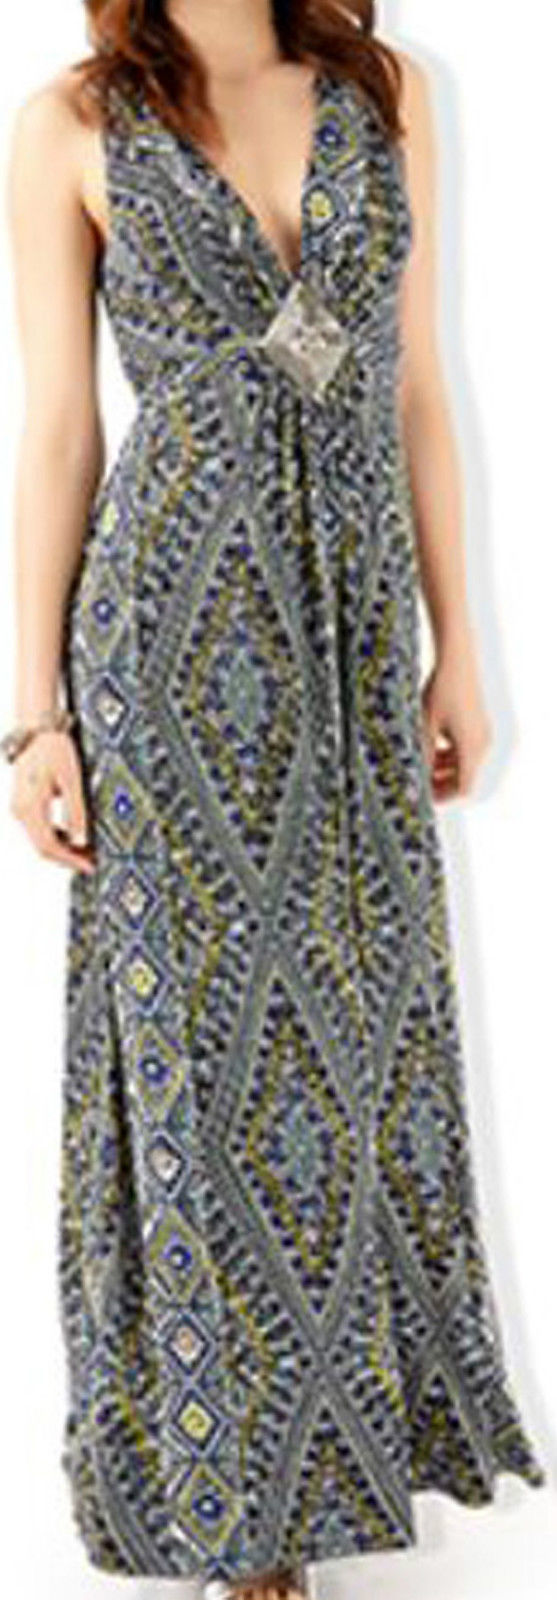 Primary image for MONSOON Pedra Maxi Dress BNWT